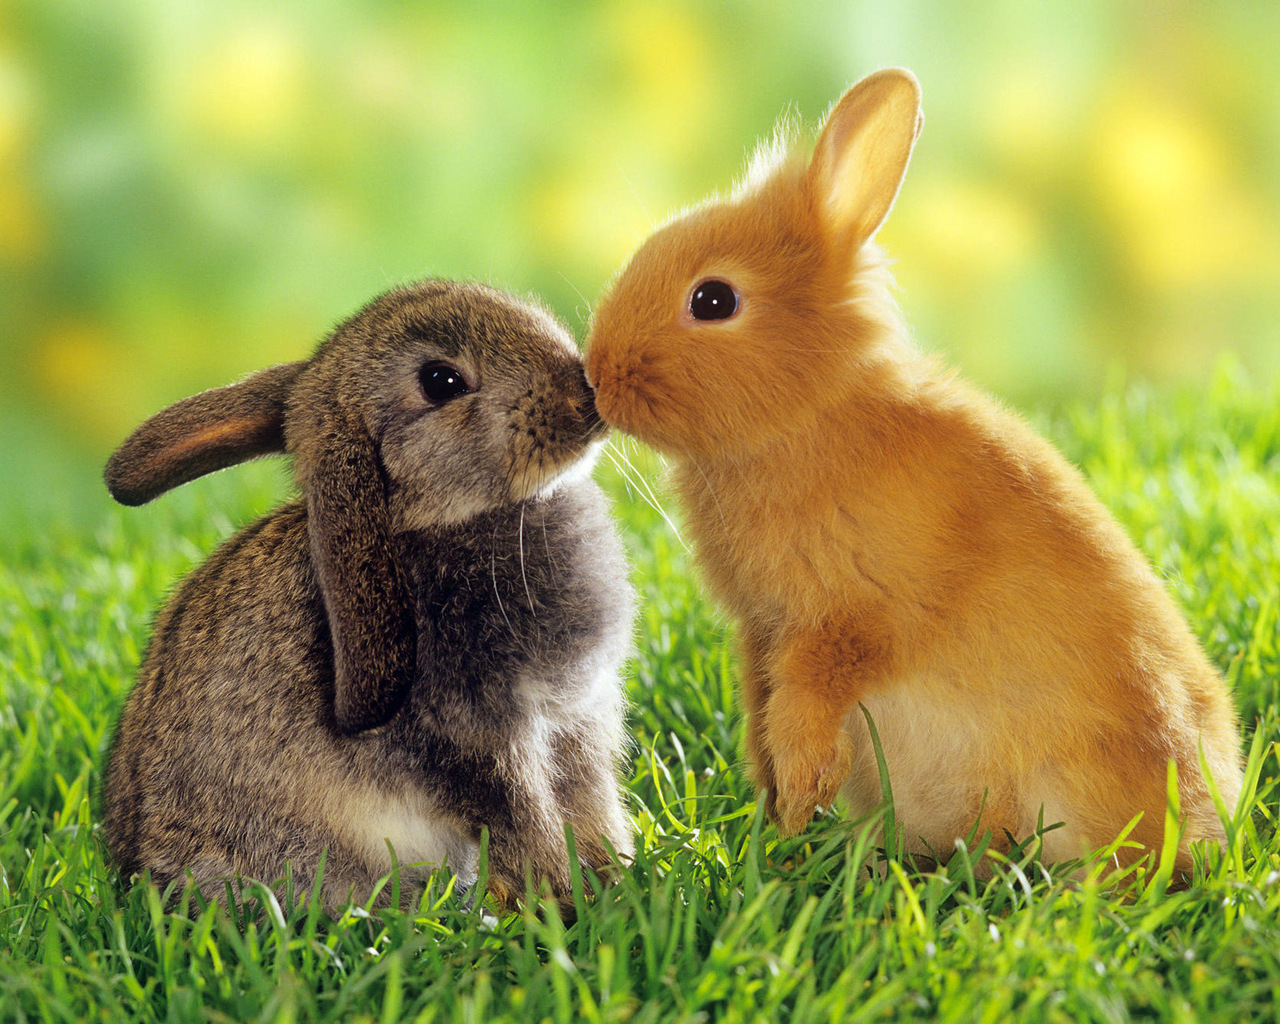 37163 download wallpaper Animals, Rabbits screensavers and pictures for free